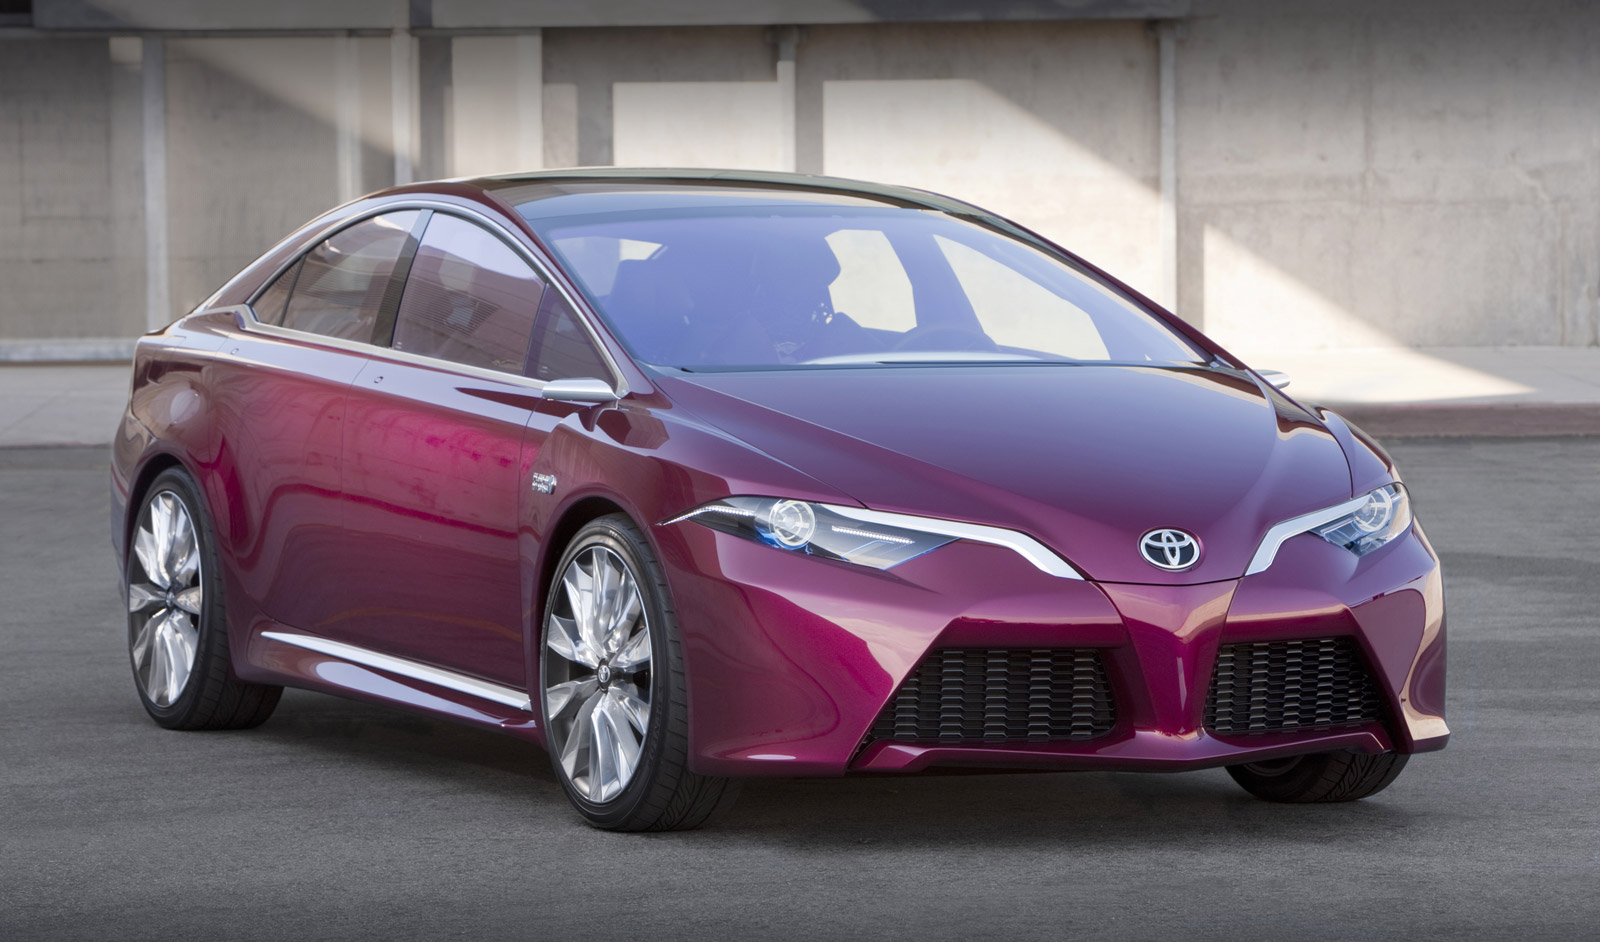 Toyota NS4 Plug-In Hybrid Concept Debuts At 2012 Detroit Auto Show